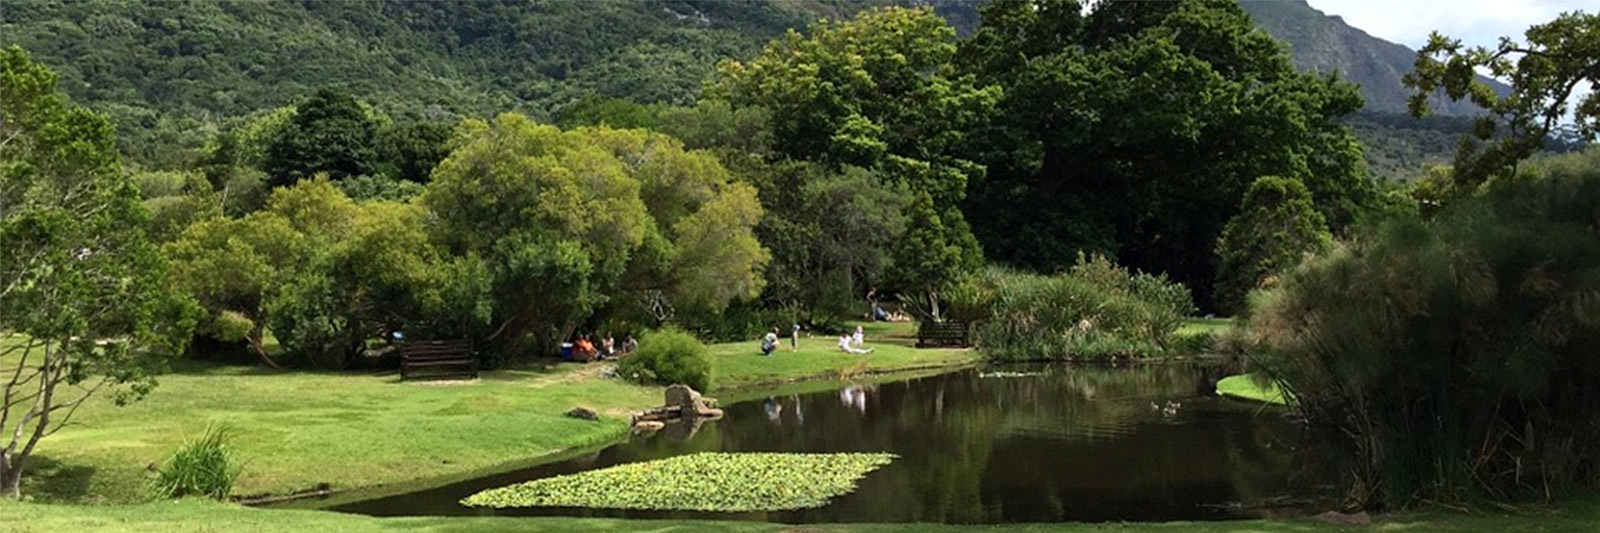 Picnic Spots South Africa